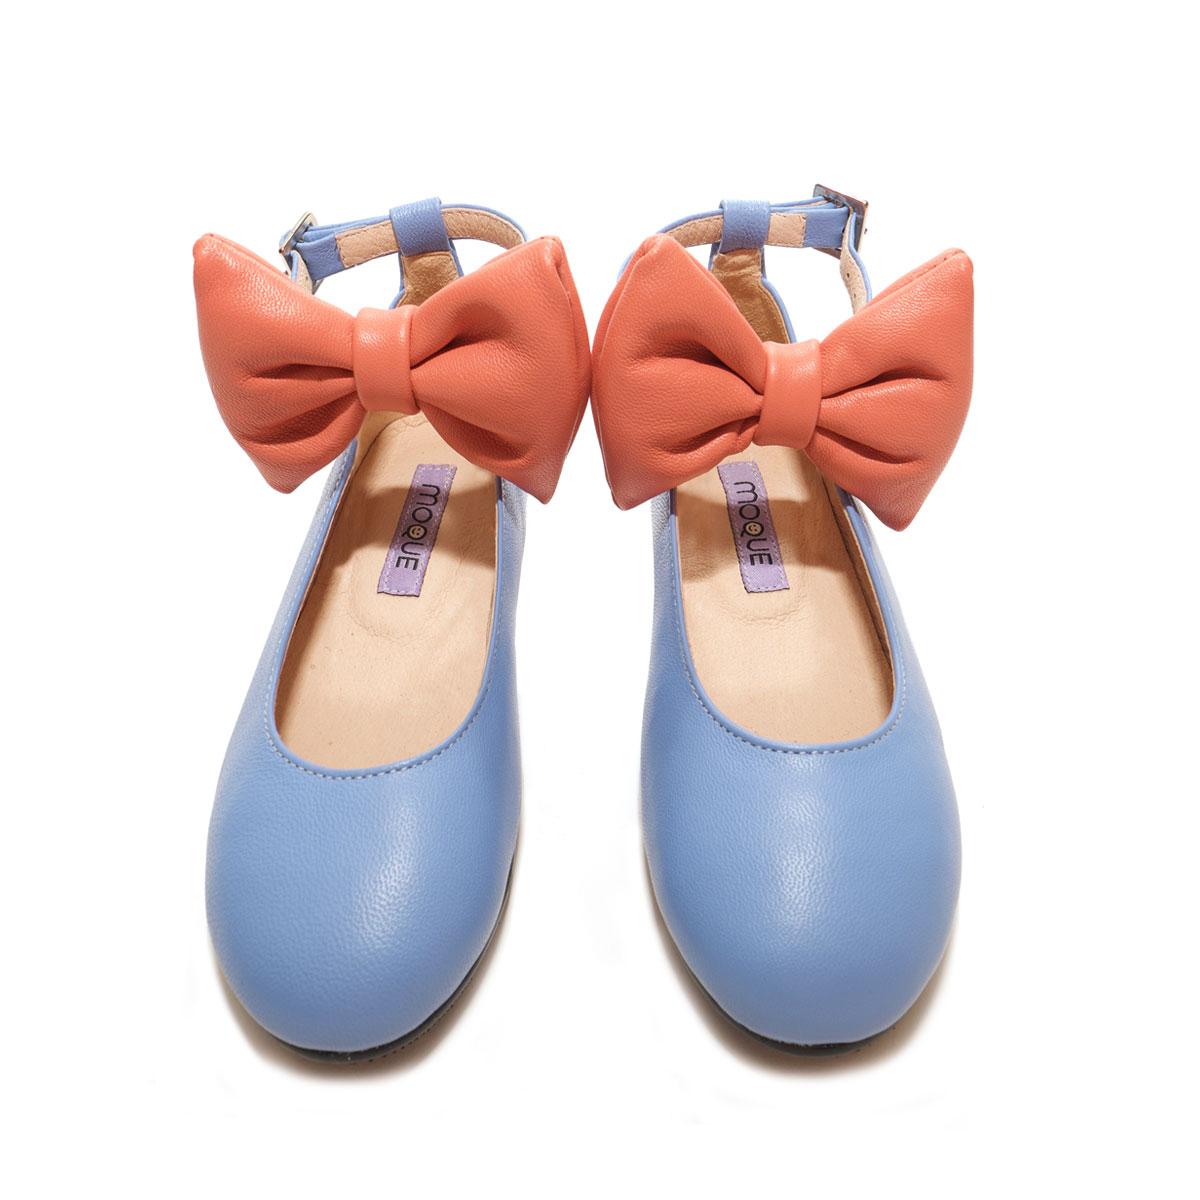 Moque Aurora Bow Flats Shoe in Blue & Coral